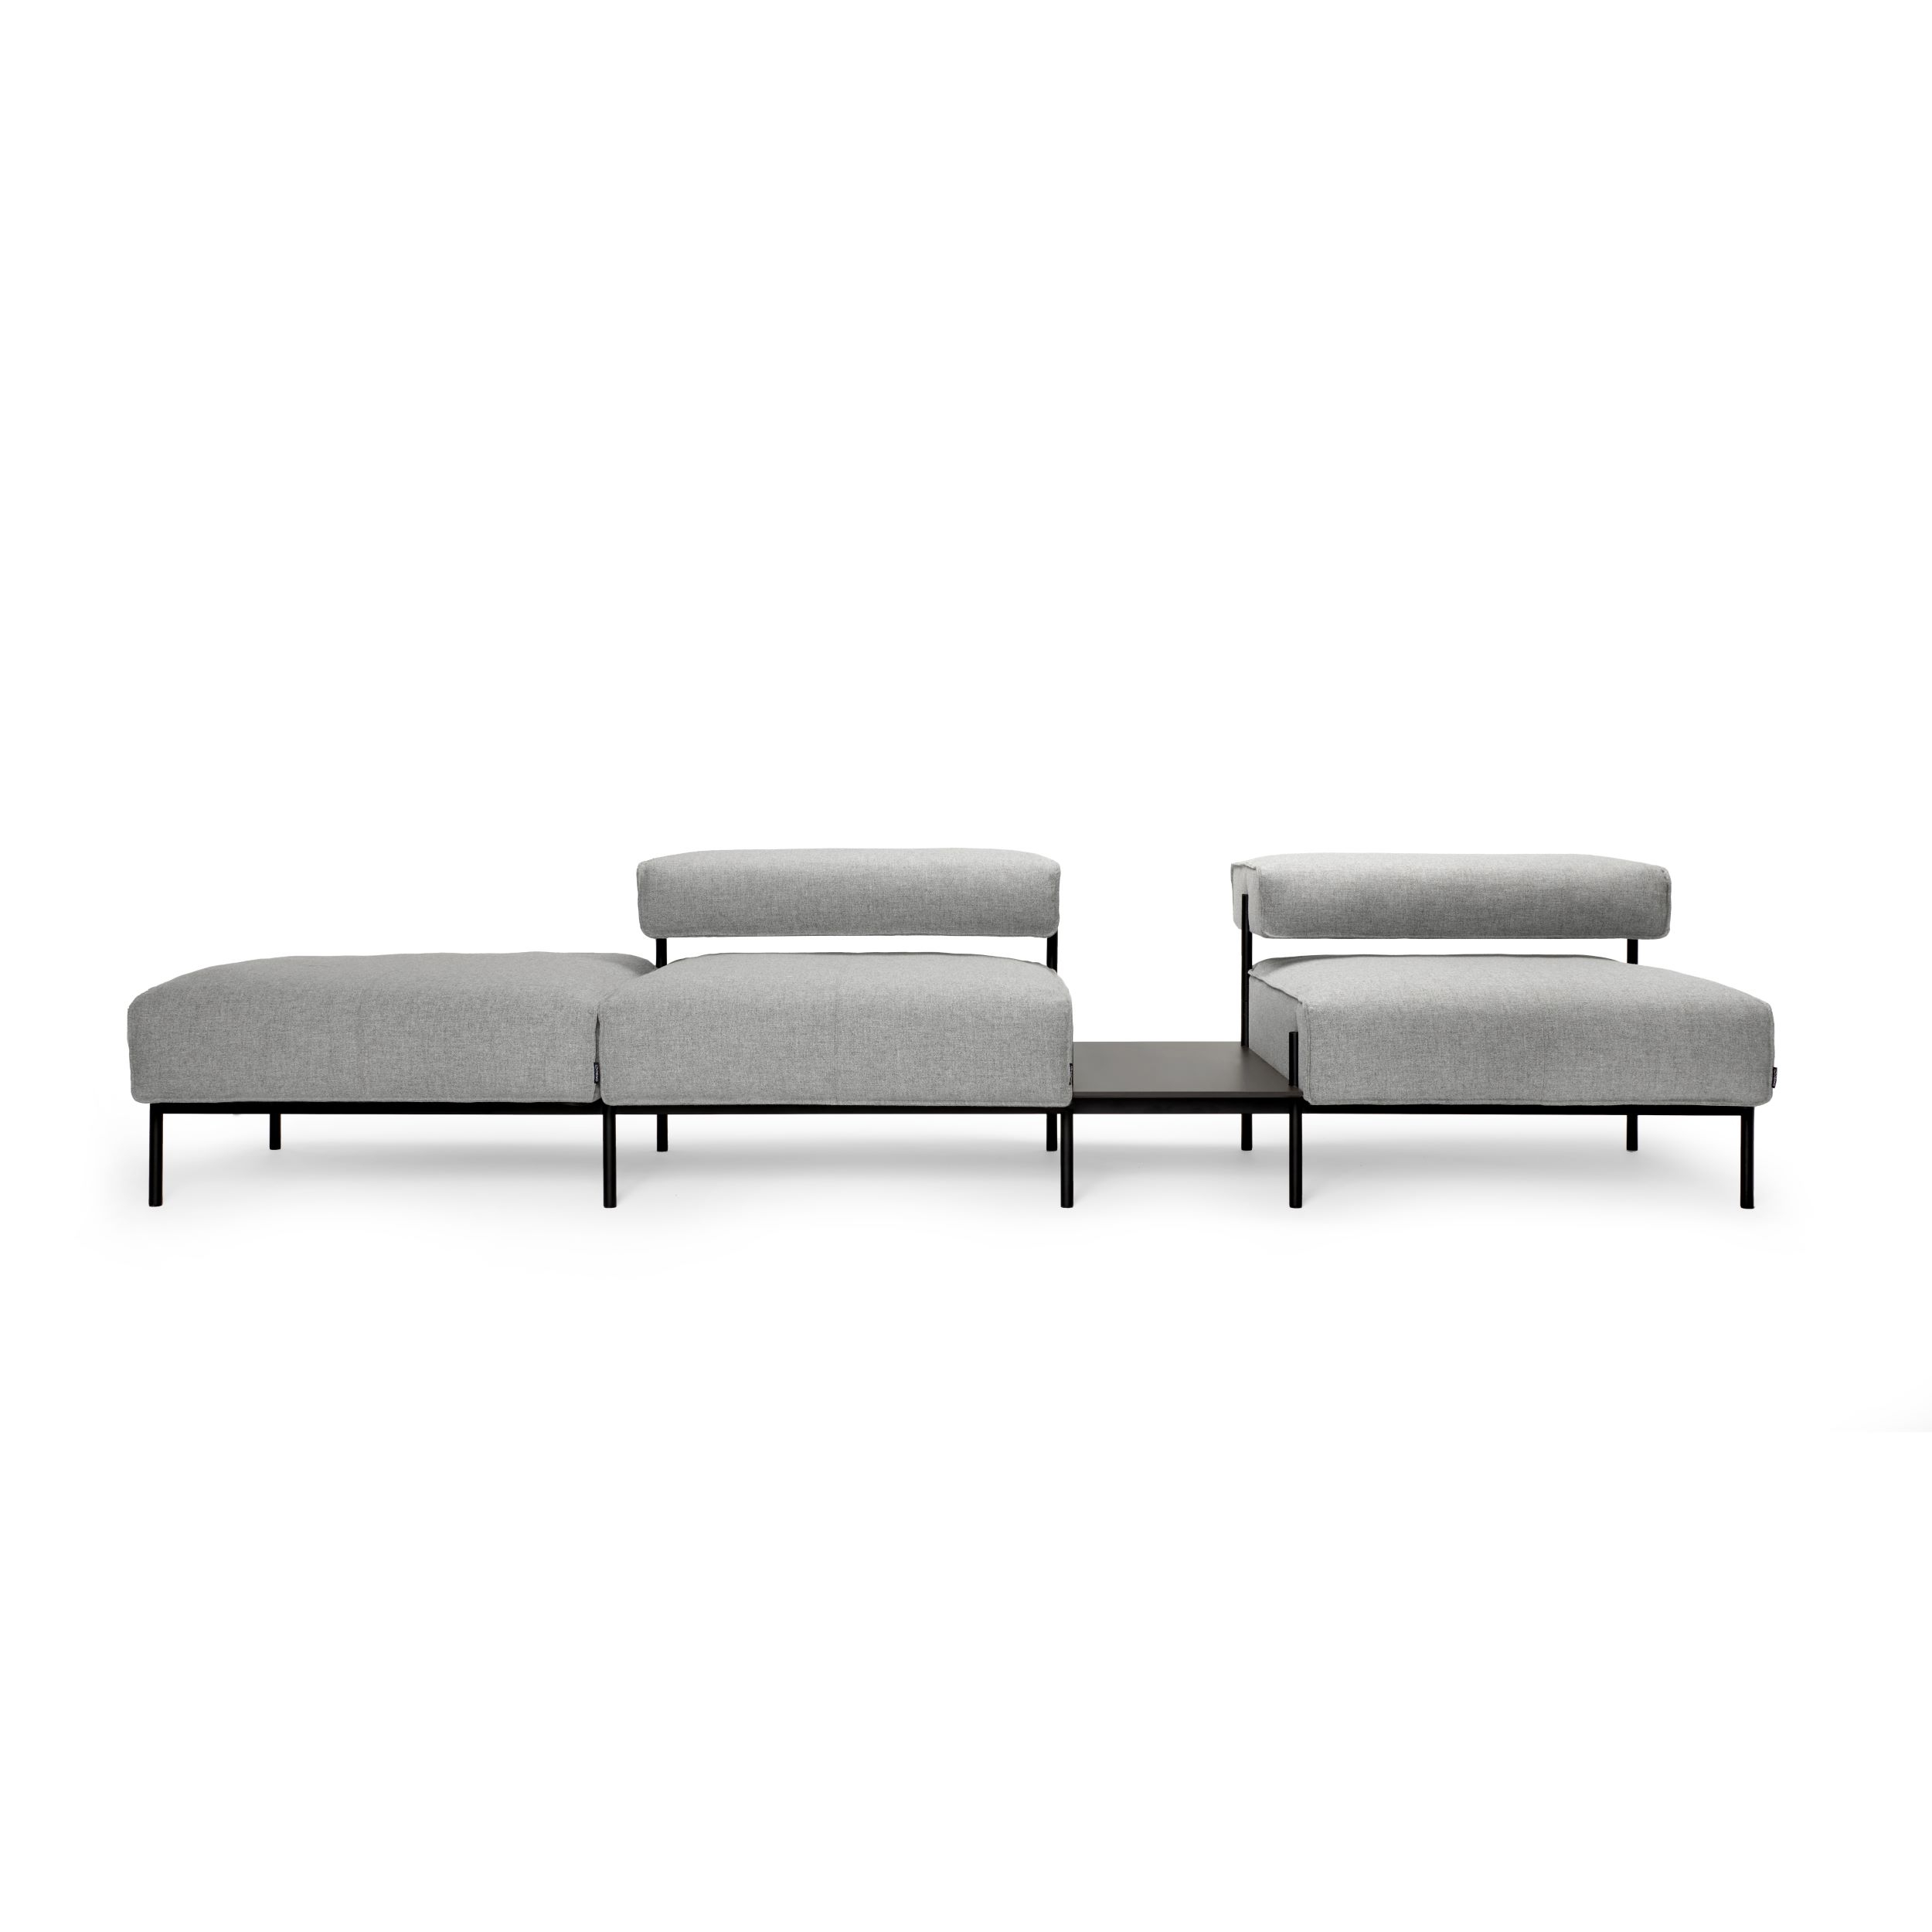 Lucy, H37/h73 | Offecct Intended For Lucy Dark Grey Sofa Chairs (View 12 of 20)